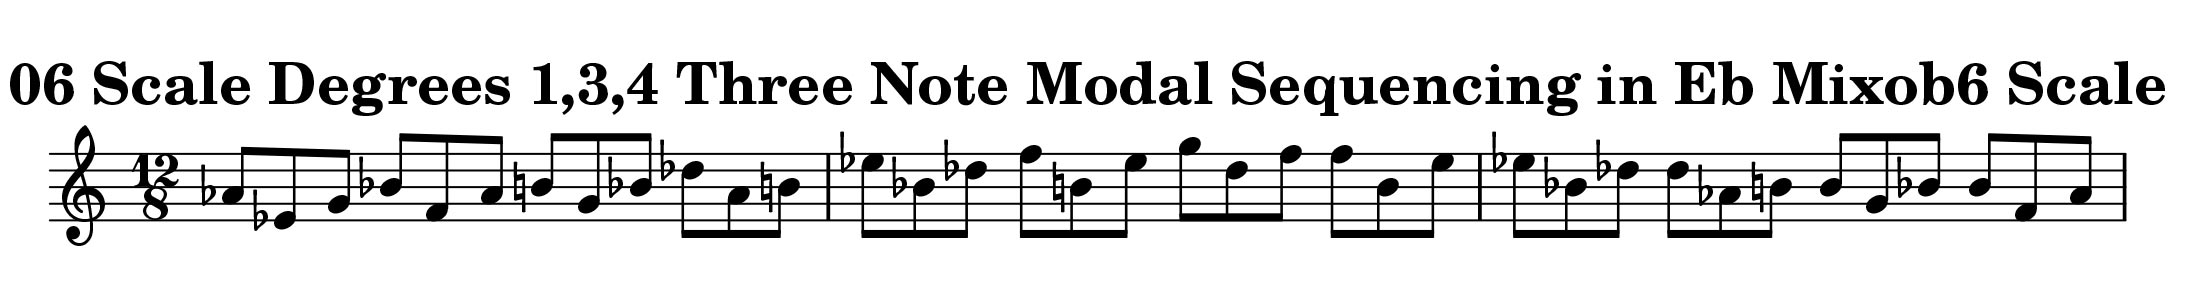 Eb Mixolydian b6 Scale Modal Sequencing 23 Note One_Octave Ascending and Descending Modal Sequencing 3 Note Group 2 for all instrumentalist by Bruce Arnold for Muse Eek Publishing Company